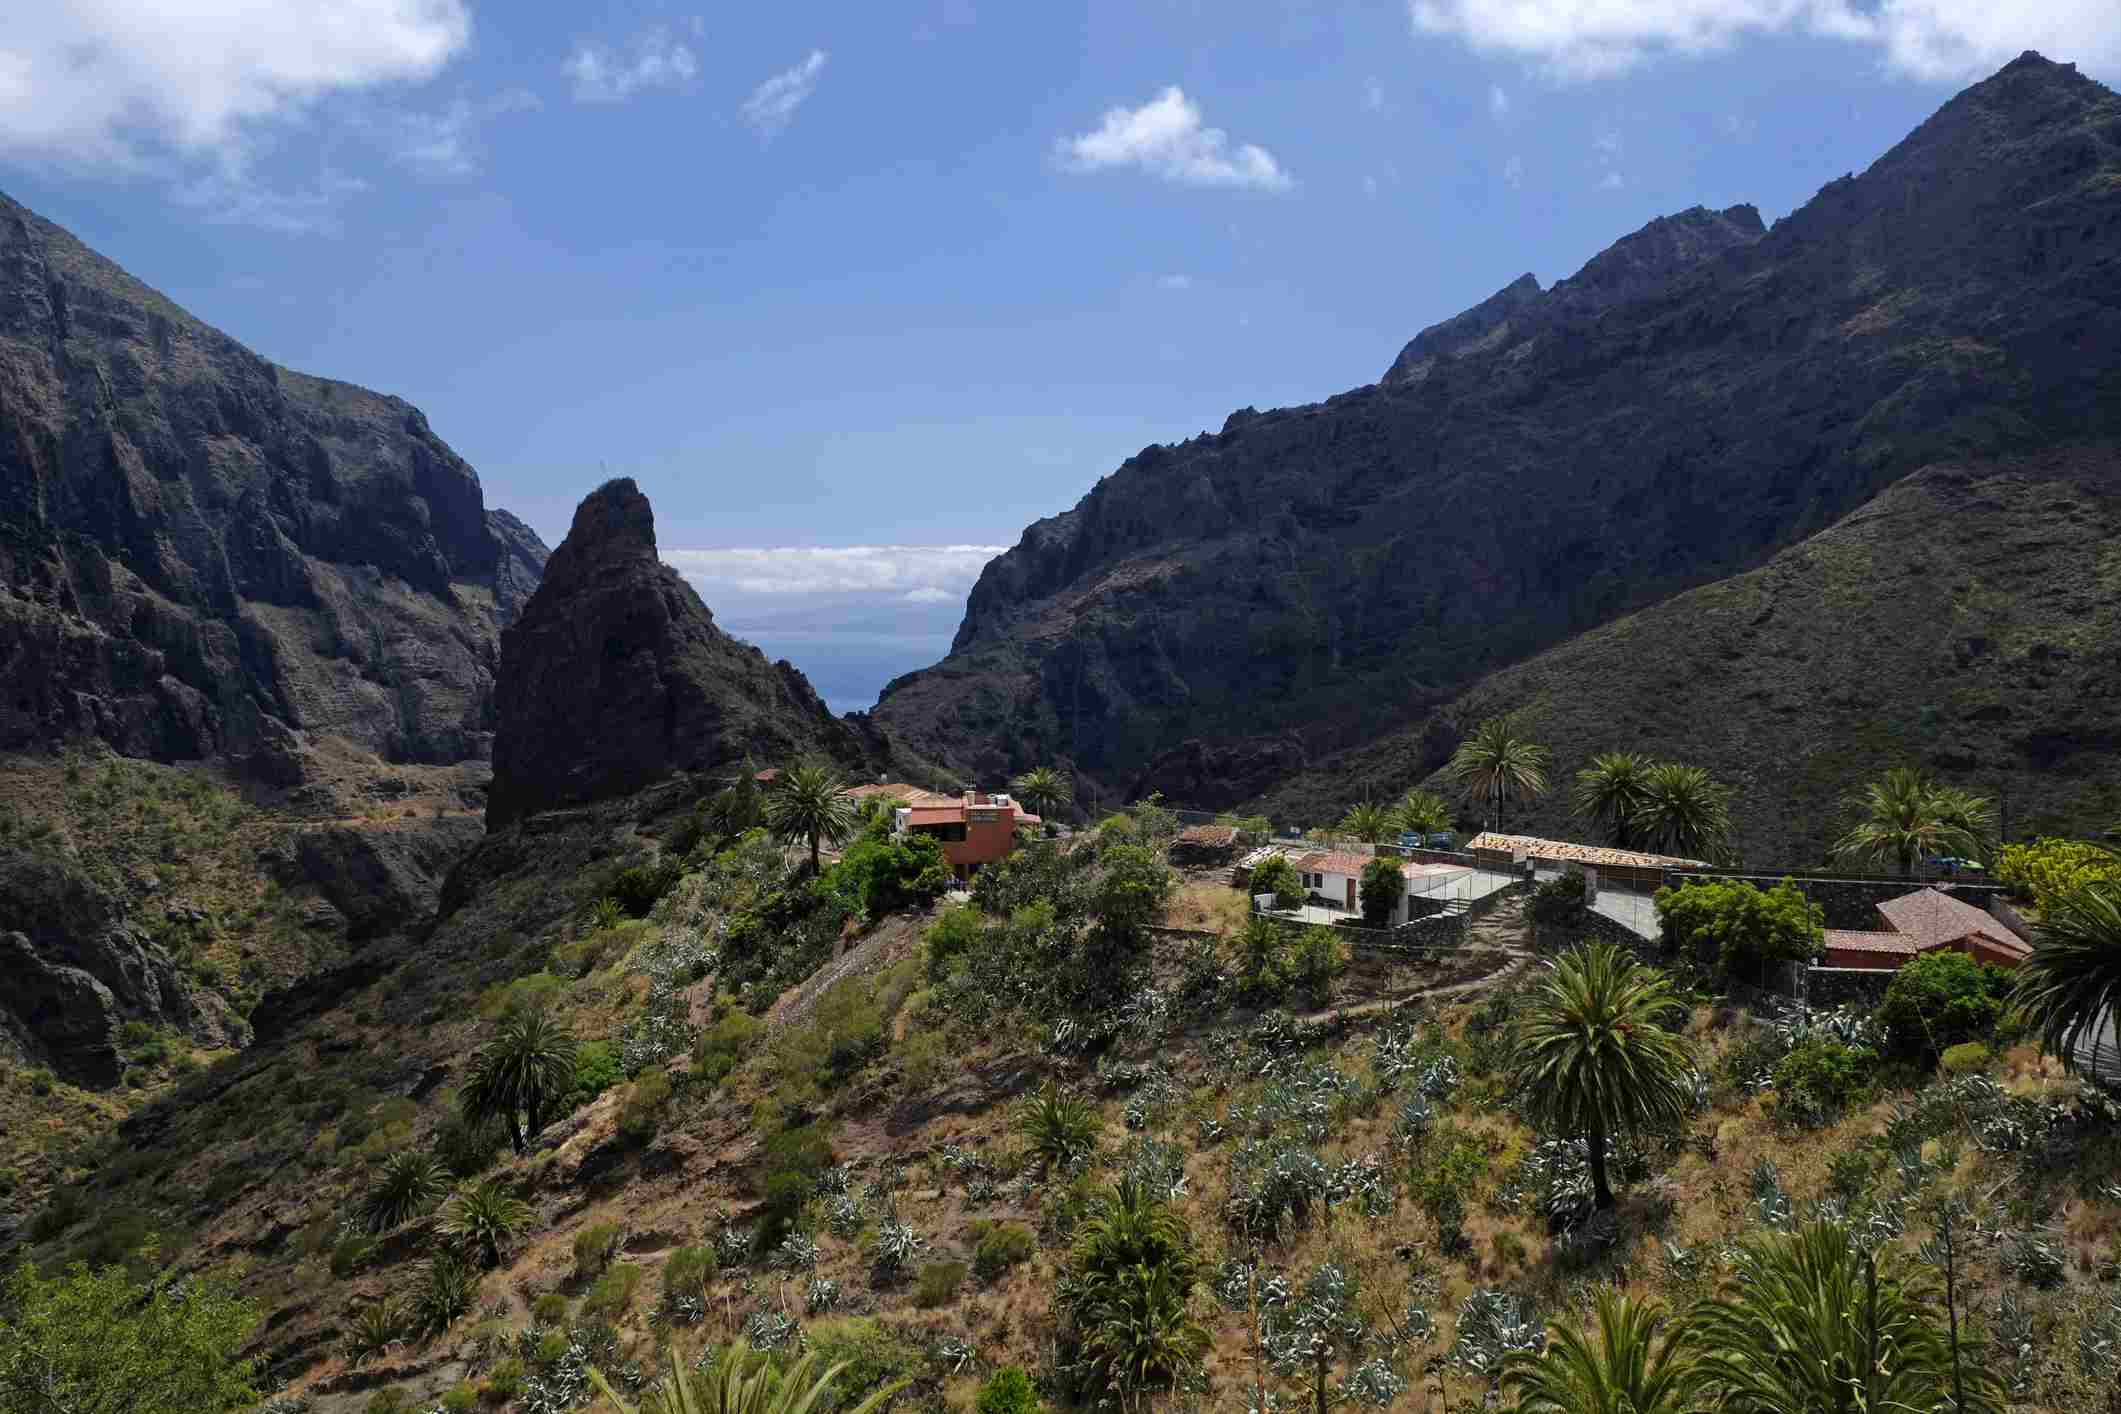 Scenic view of deep ravines surrounding the village of Masca